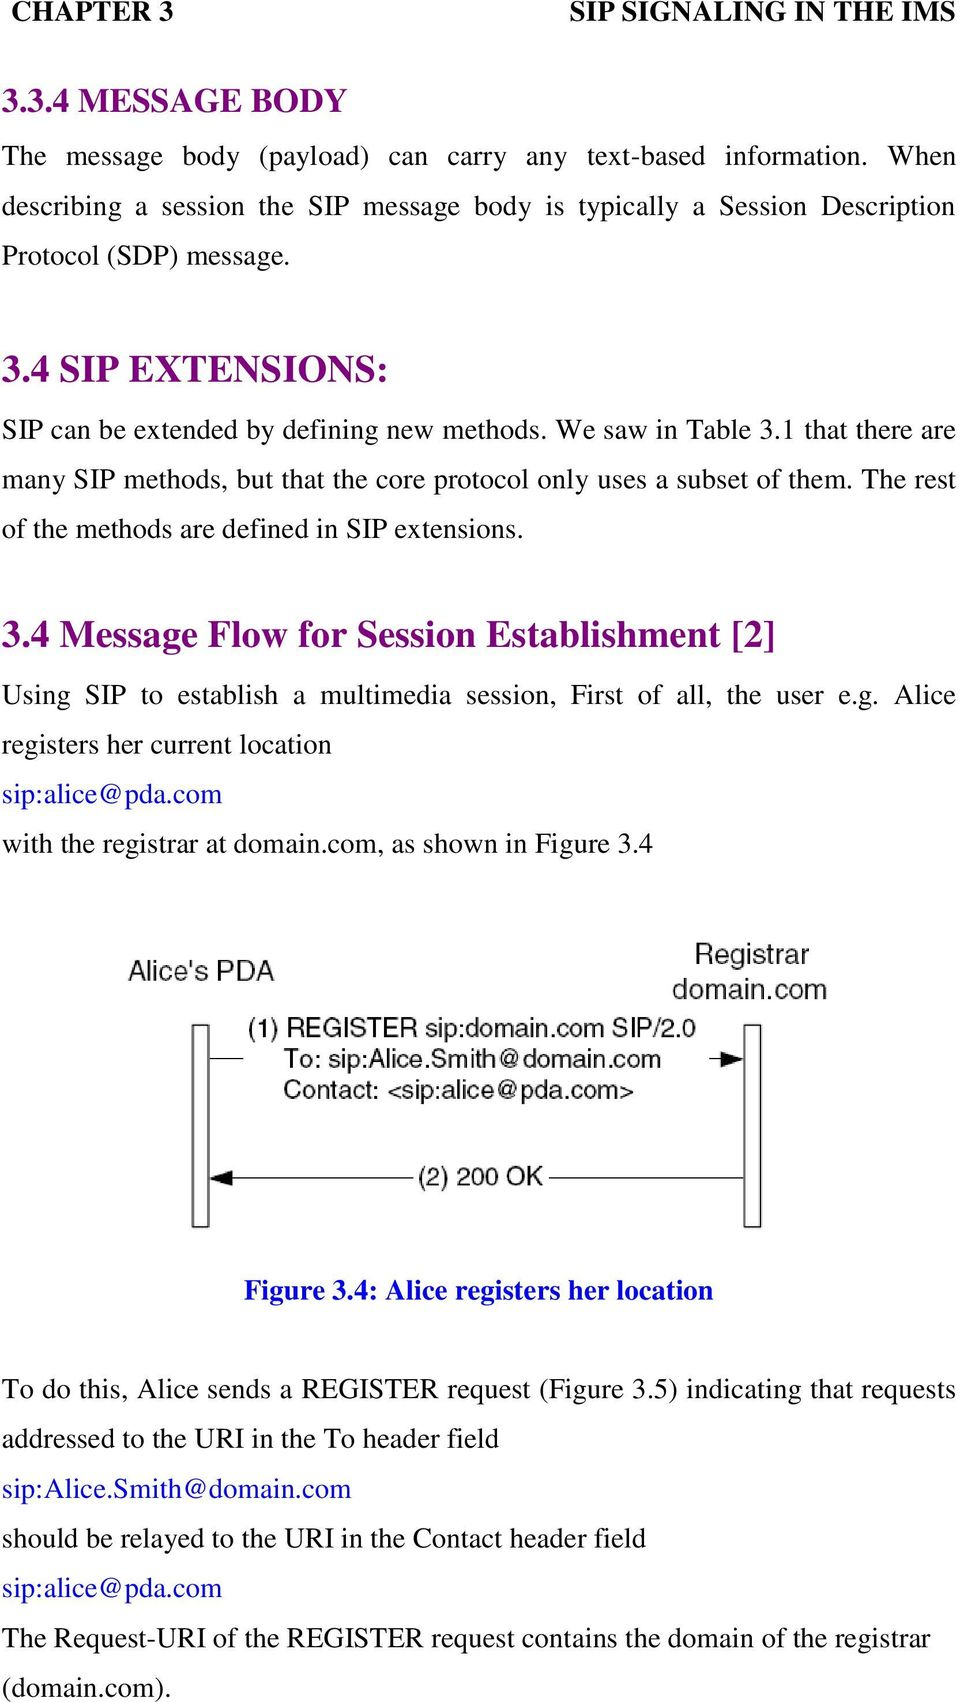 The rest of the methods are defined in SIP extensions. 3.4 Message Flow for Session Establishment [2] Using SIP to establish a multimedia session, First of all, the user e.g. Alice registers her current location sip:alice@pda.